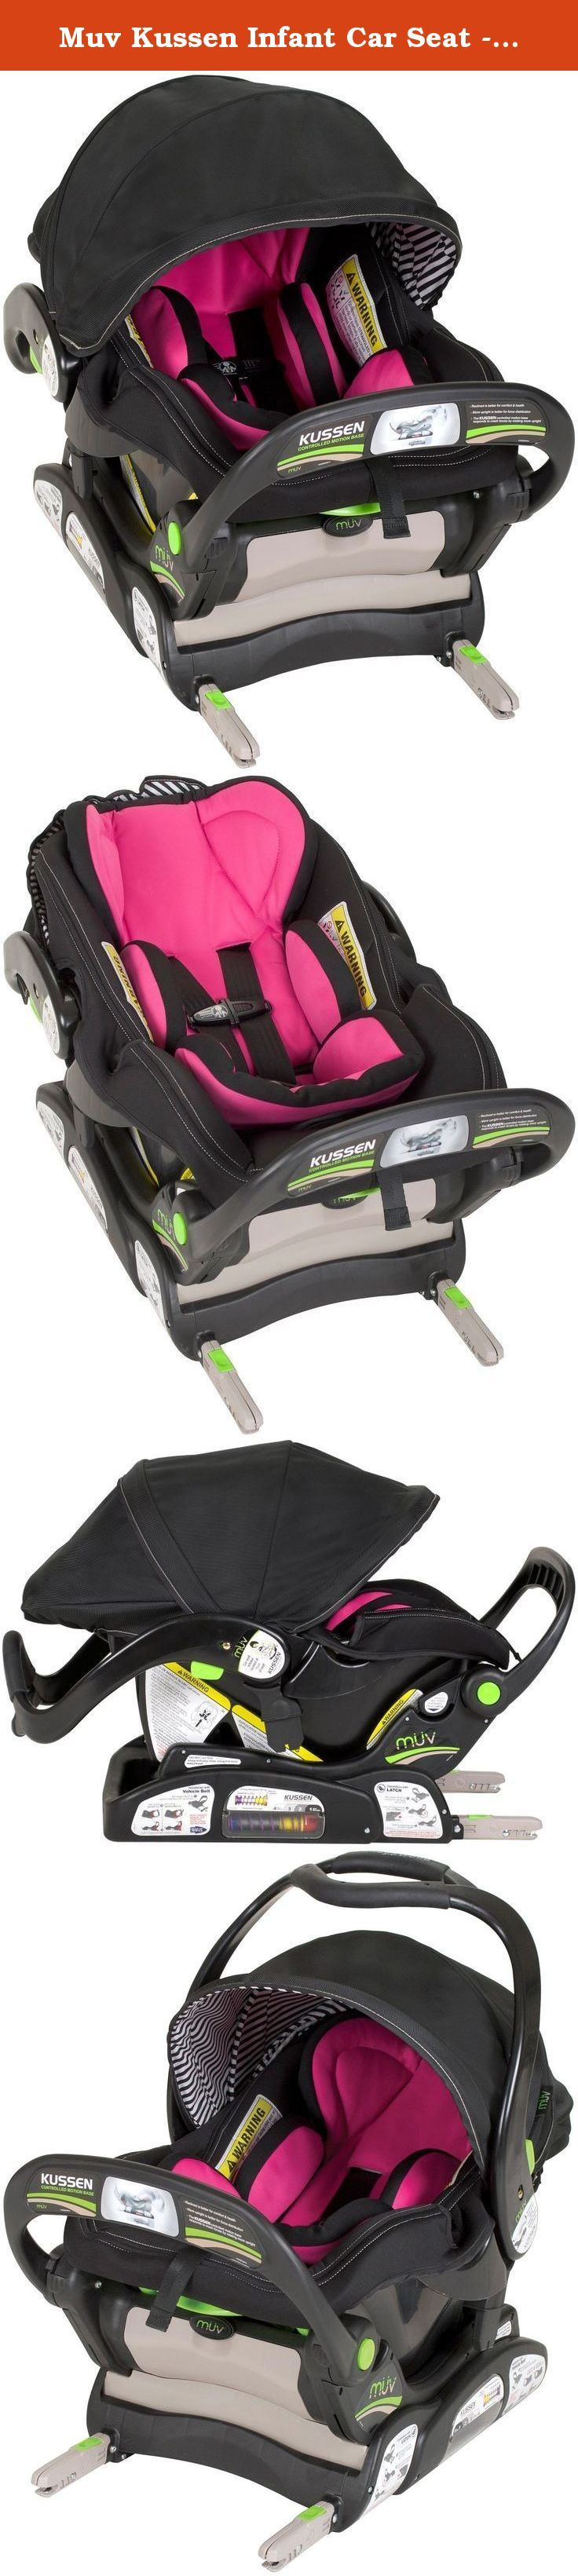 Muv Kussen Infant Car Seat - Candy. Muv Kussen Infant Car Seat - Candy Driving home wit your new baby is exciting and nerve racking at the same time. You want you baby's first trip home to be comfortable, safe, and secure. Safer than a traditional car seat... our patented controlled motion base makes KUSSEN the safest car seat available. The KUSSEN infant car seat maximizes your baby's comfort with soft textured materials, memory foam seat pad and inserts. It's safe, secure, and responds…